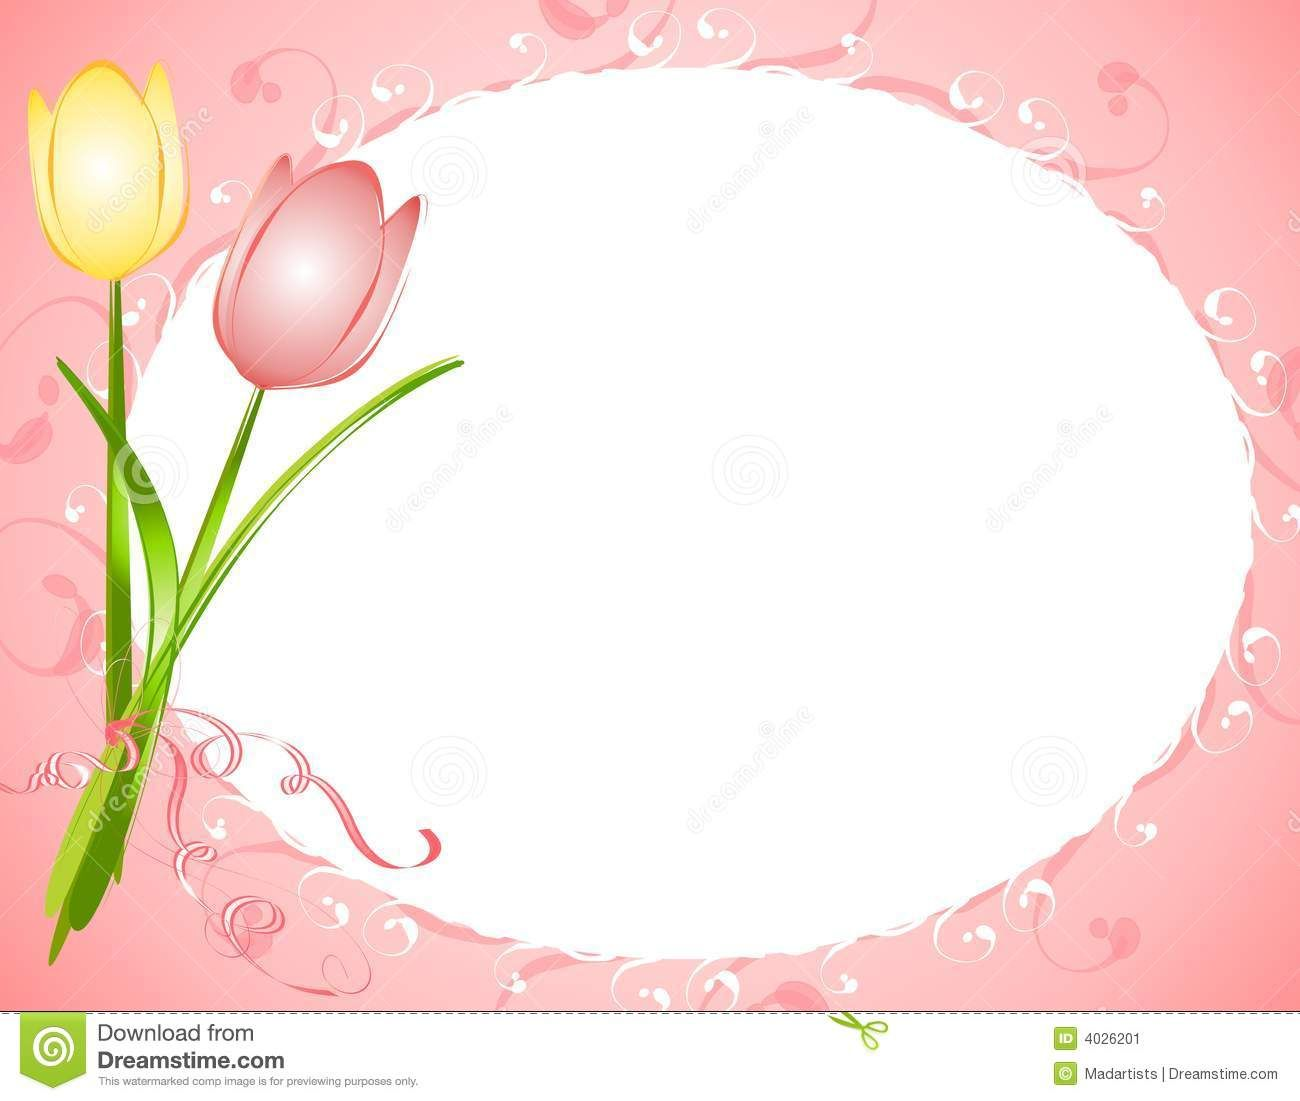 Pink Oval Tulips Flower Frame Border Flower Frame Tulips Flowers Flower Border